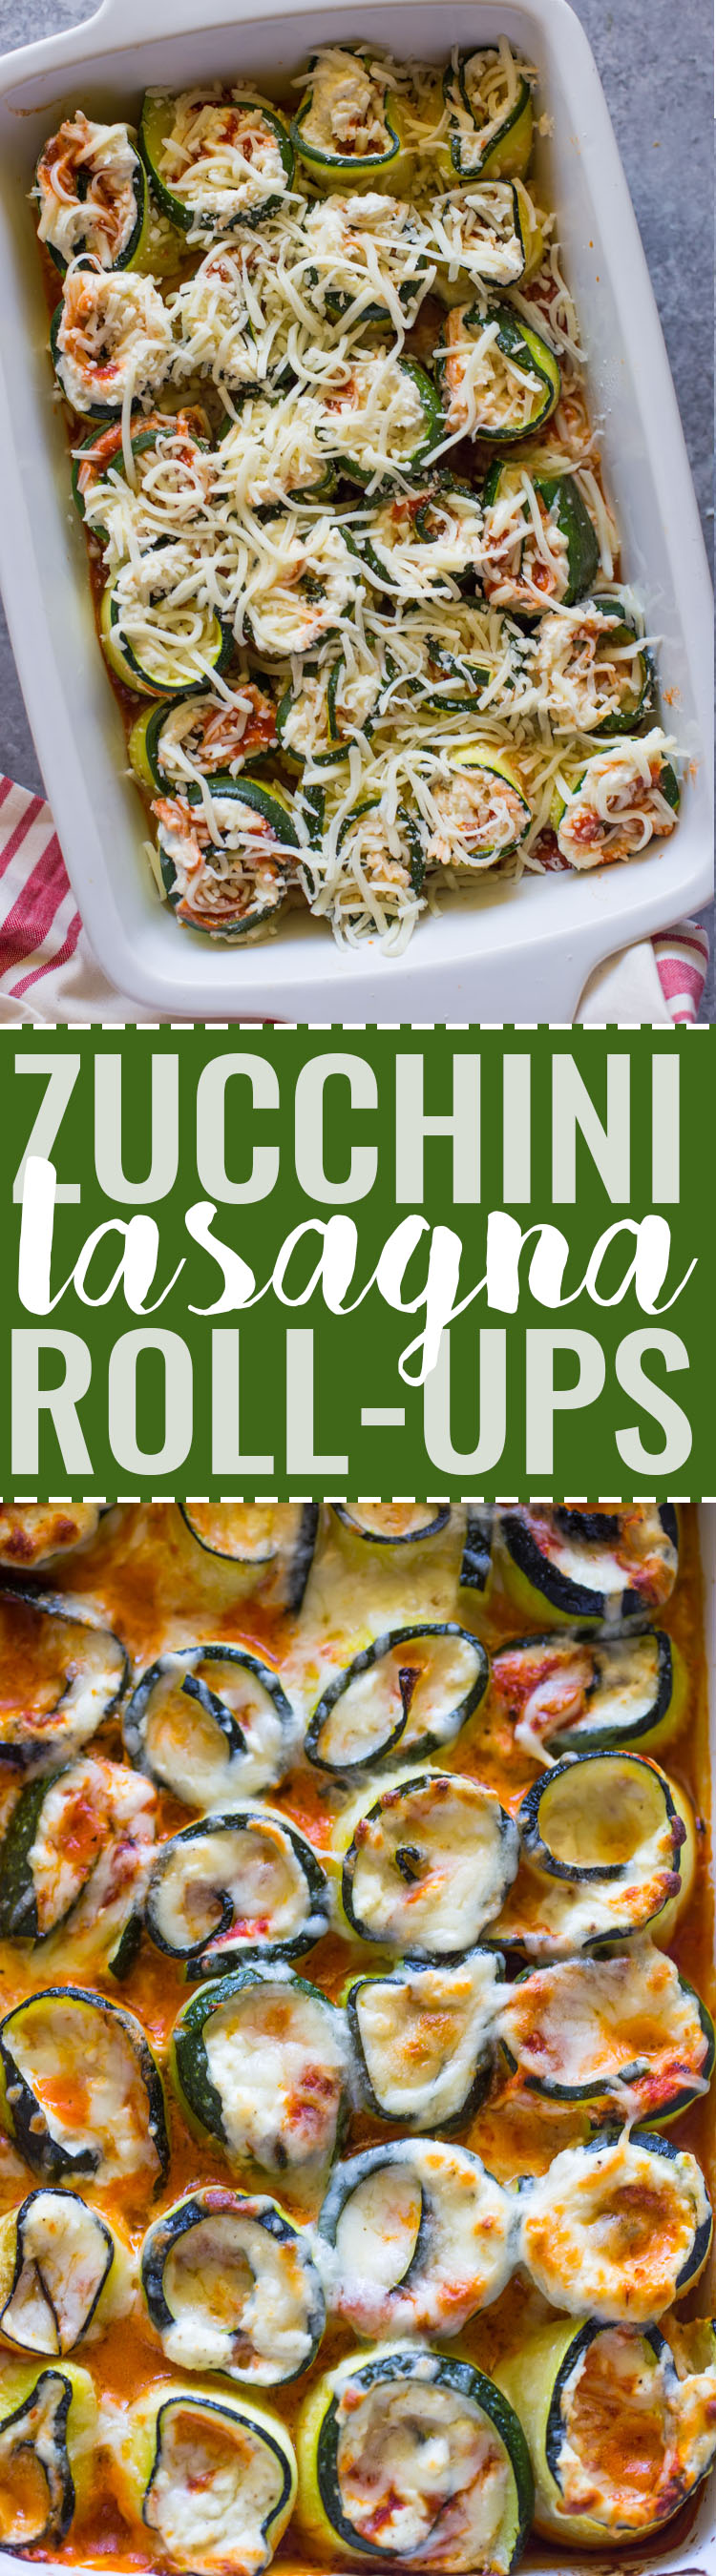 Low-Carb Zucchini Lasagna Roll-Ups